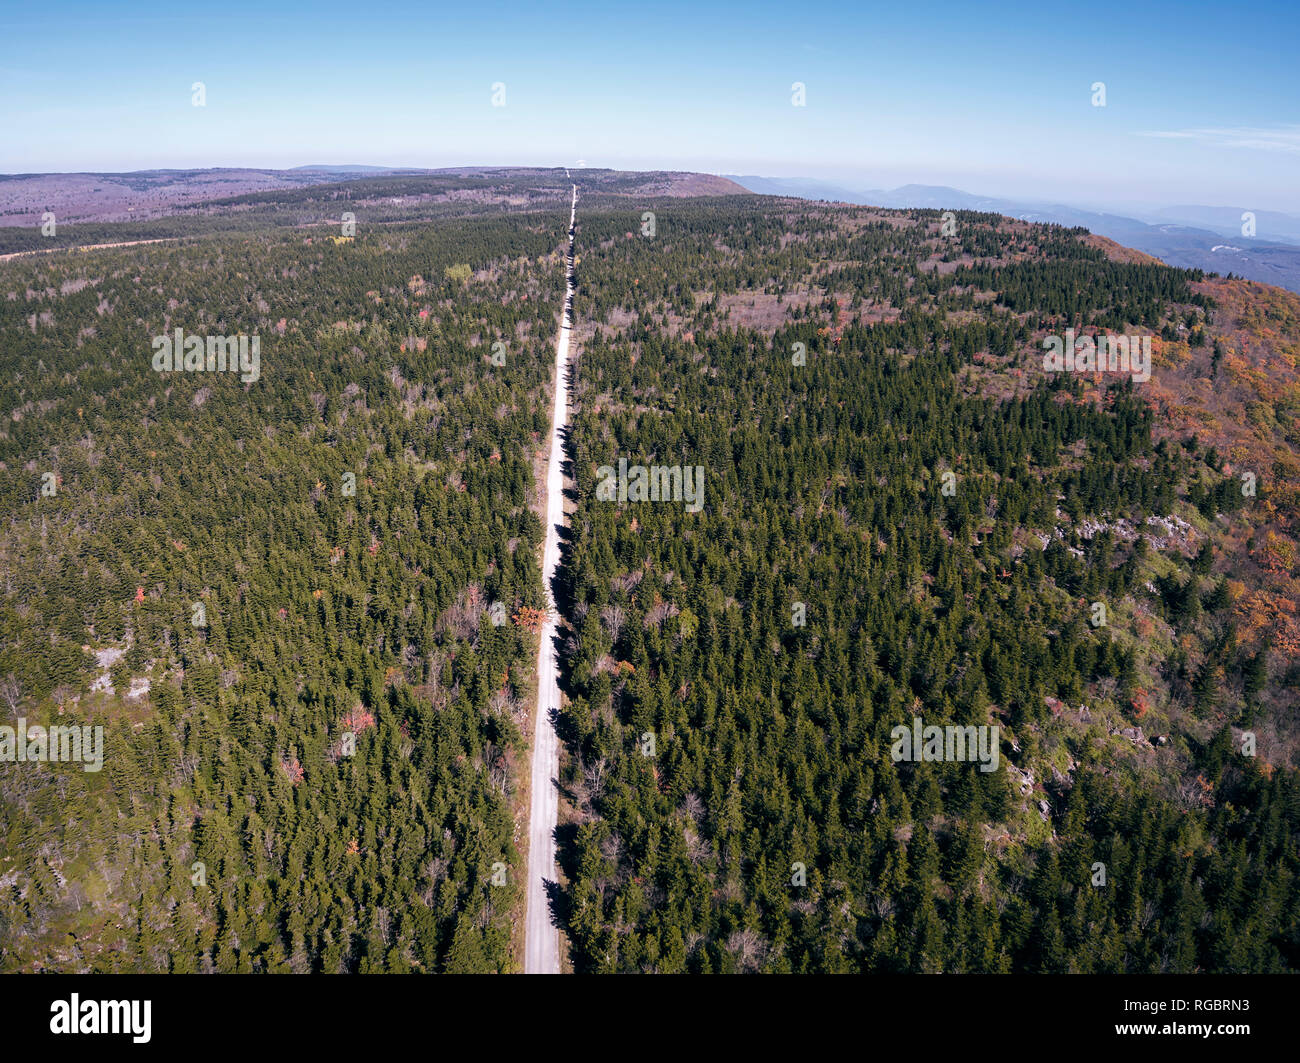 USA, West Virginia, Aerial view of road through Dolly Sods Wilderness area - Stock Image